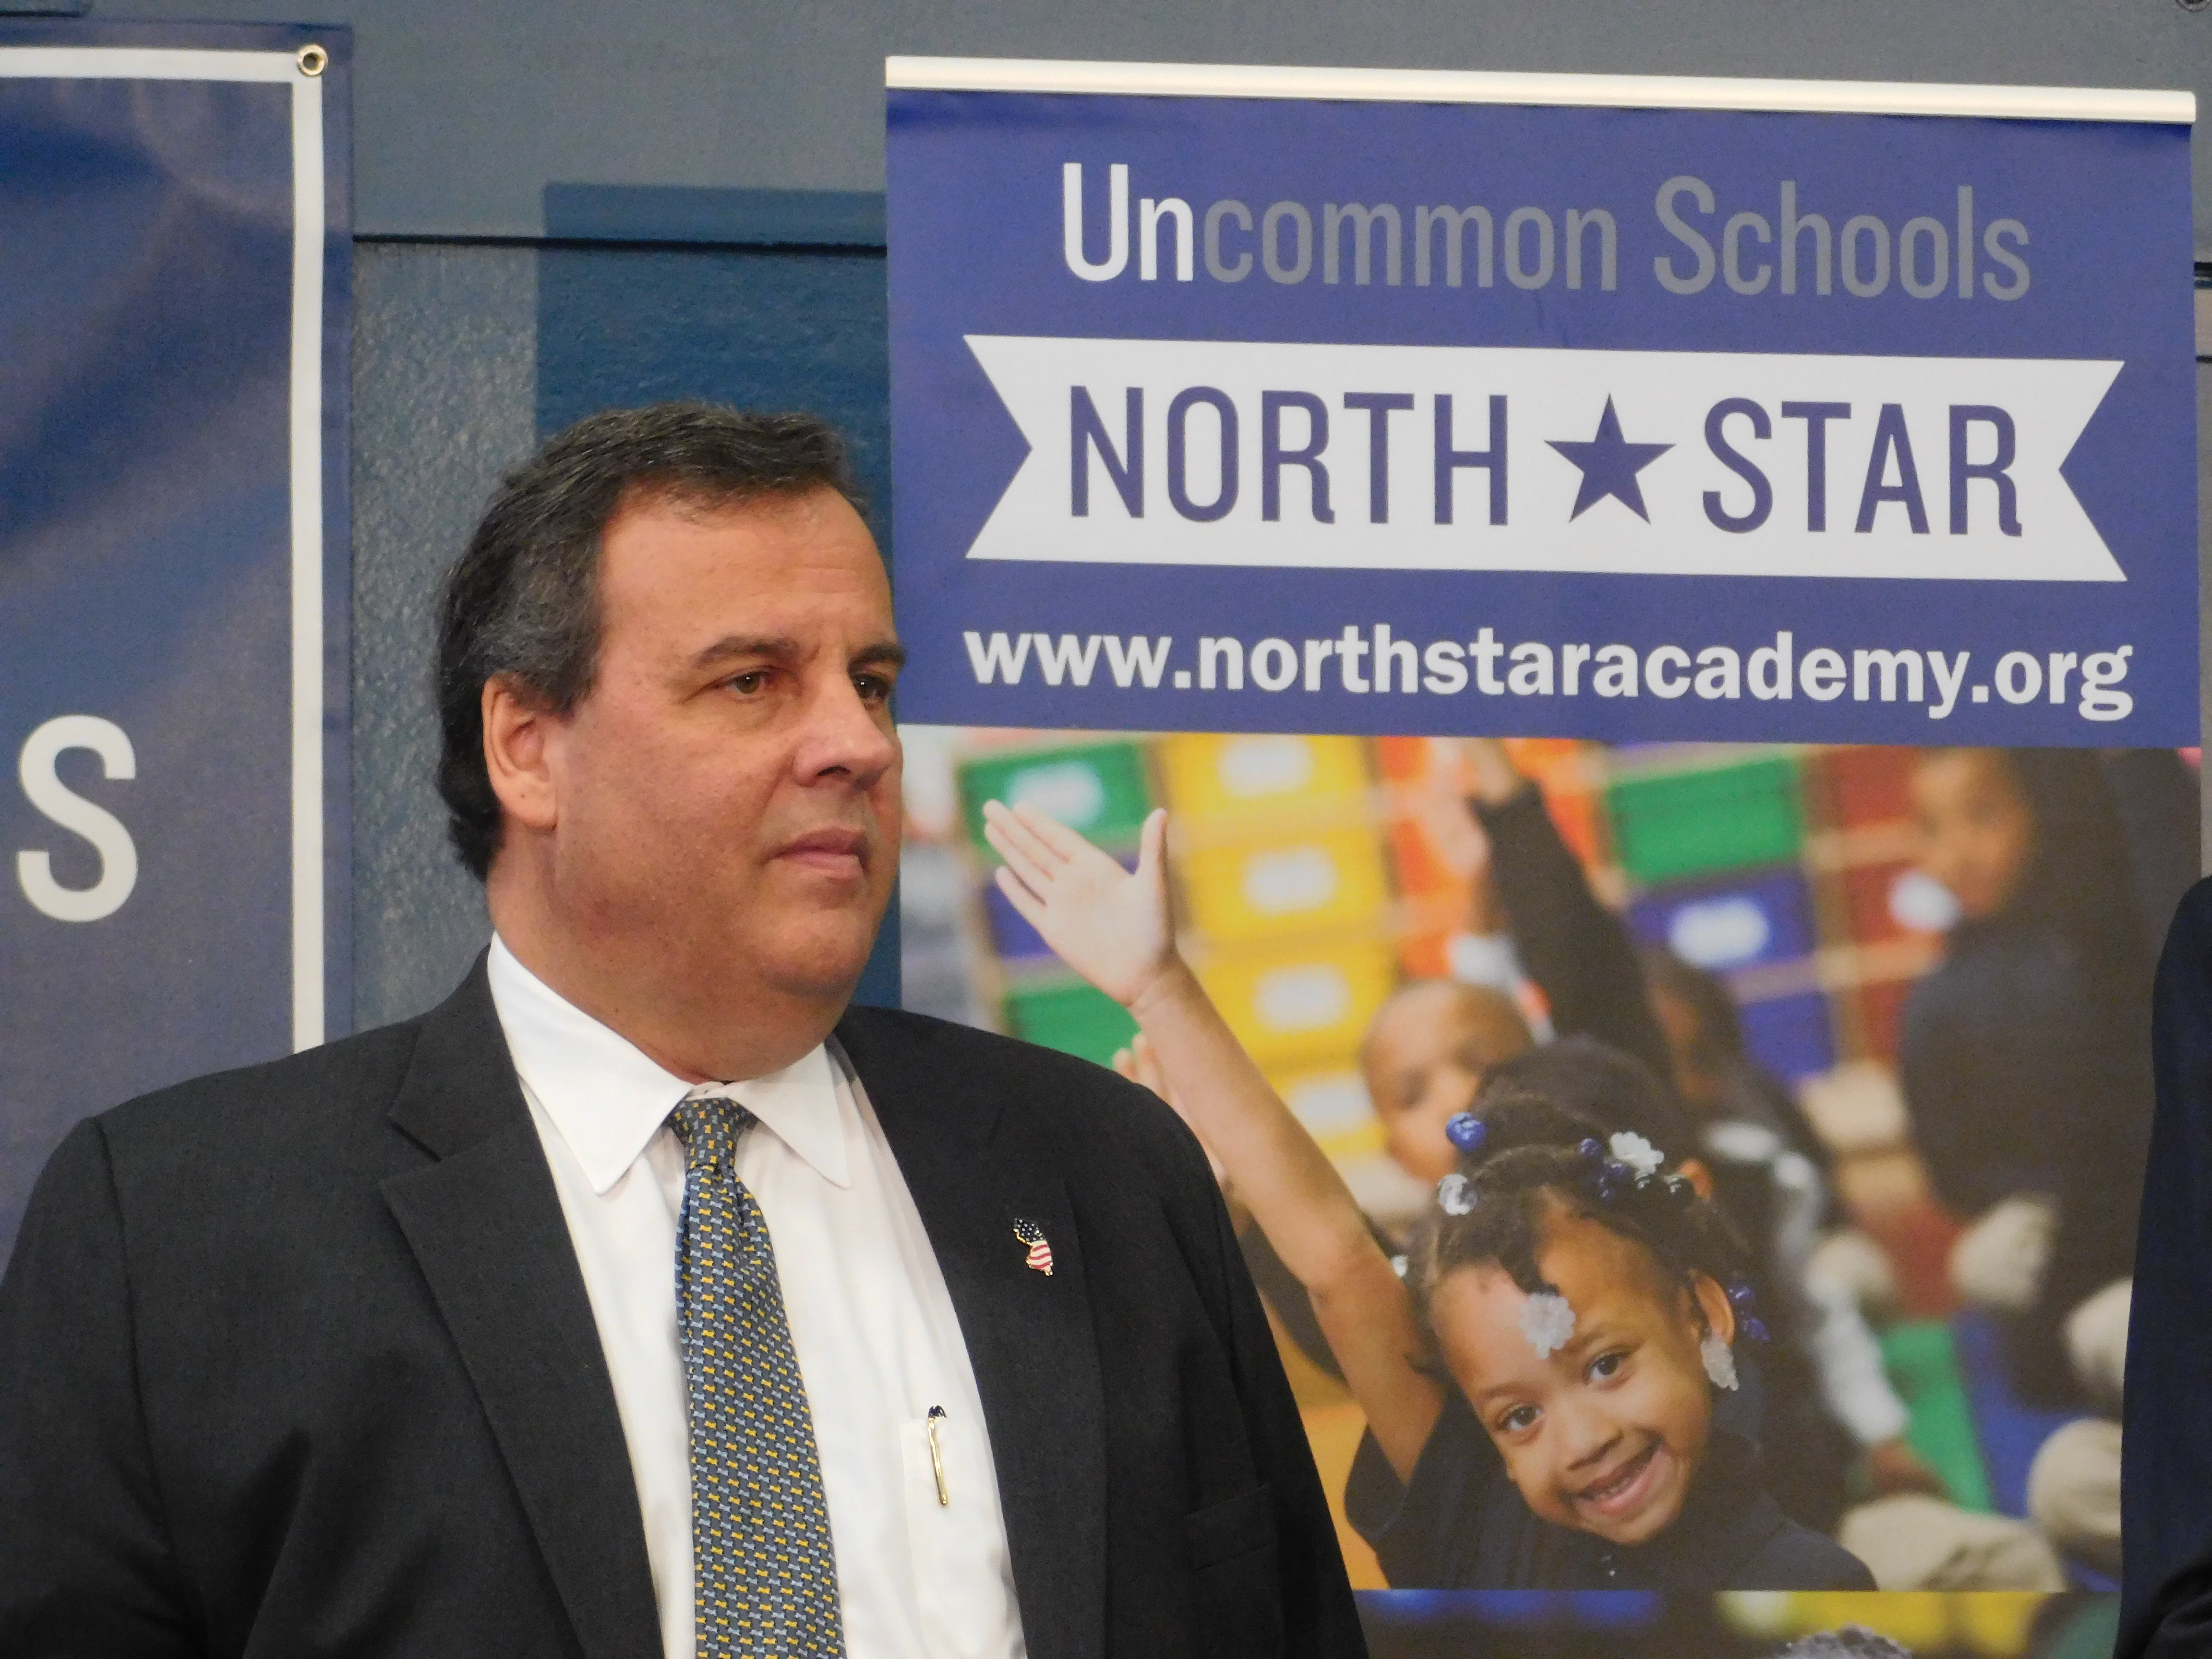 Christie supports the expansion of charter schools.